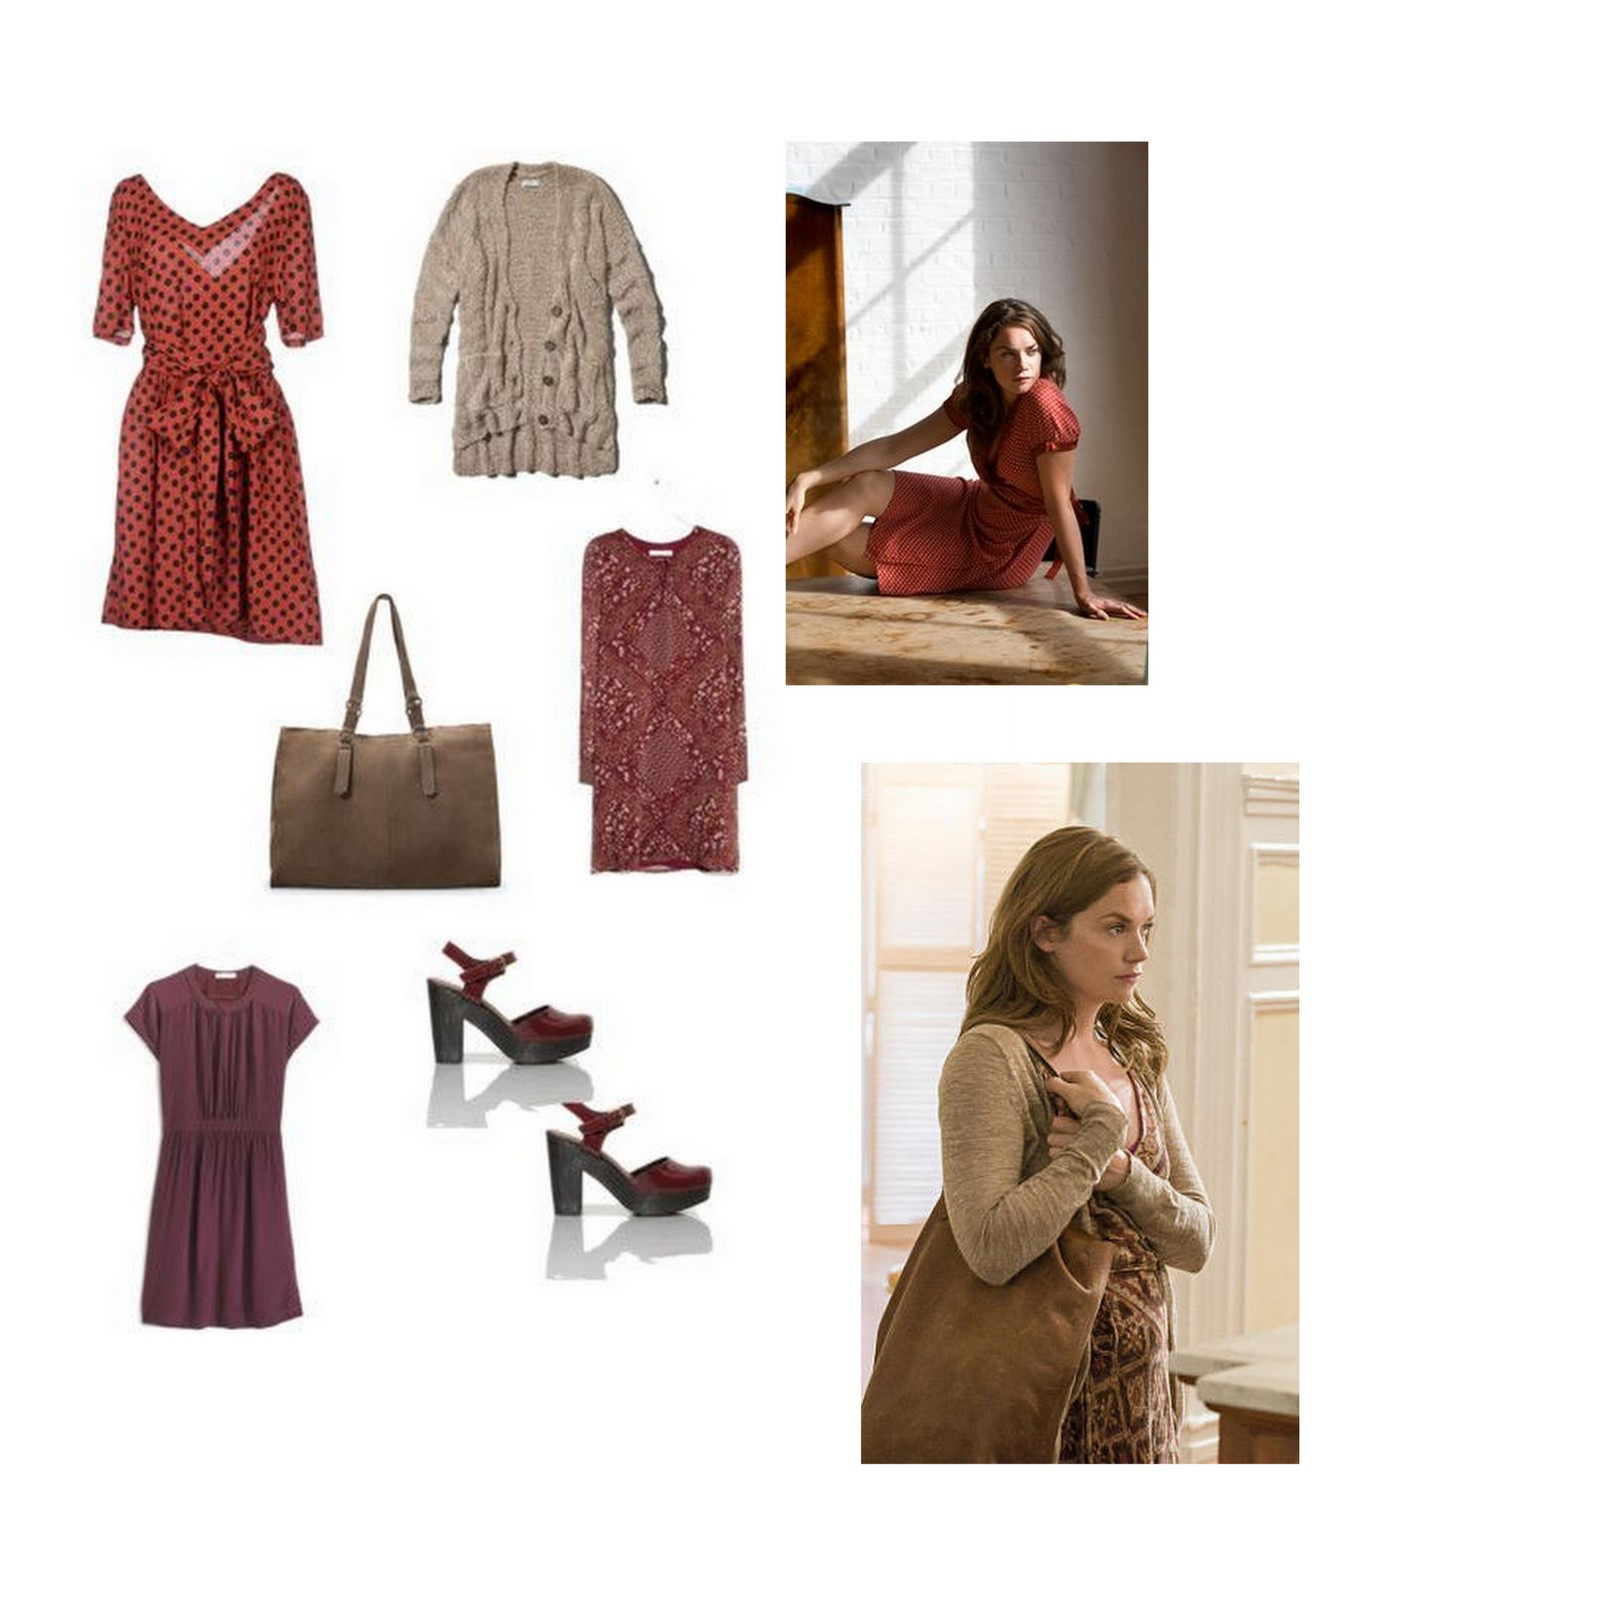 Summer wear Alison The Affair style How to wear Summer dresses